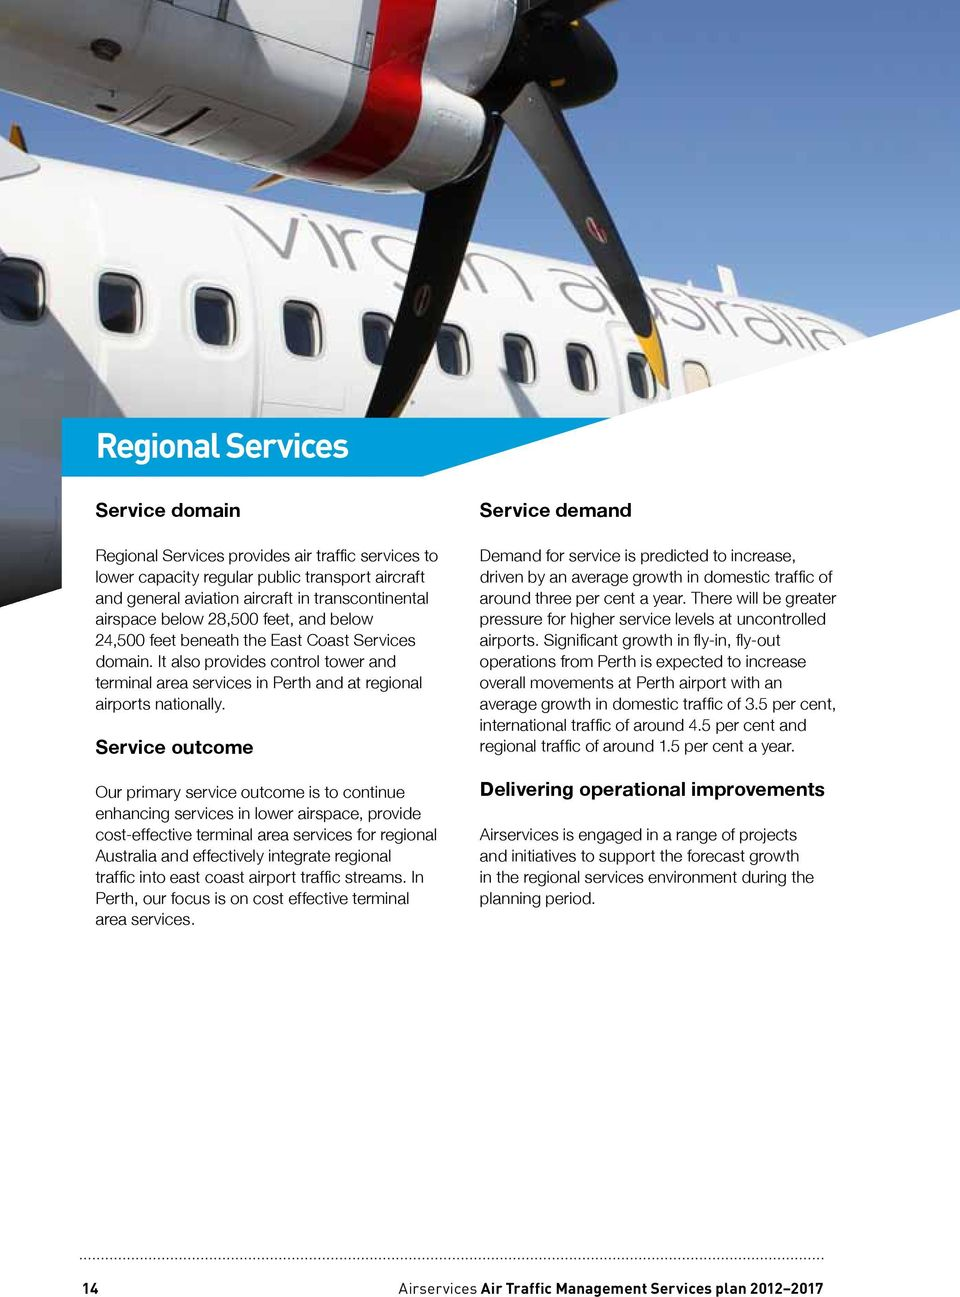 Service outcome Our primary service outcome is to continue enhancing services in lower airspace, provide cost-effective terminal area services for regional Australia and effectively integrate